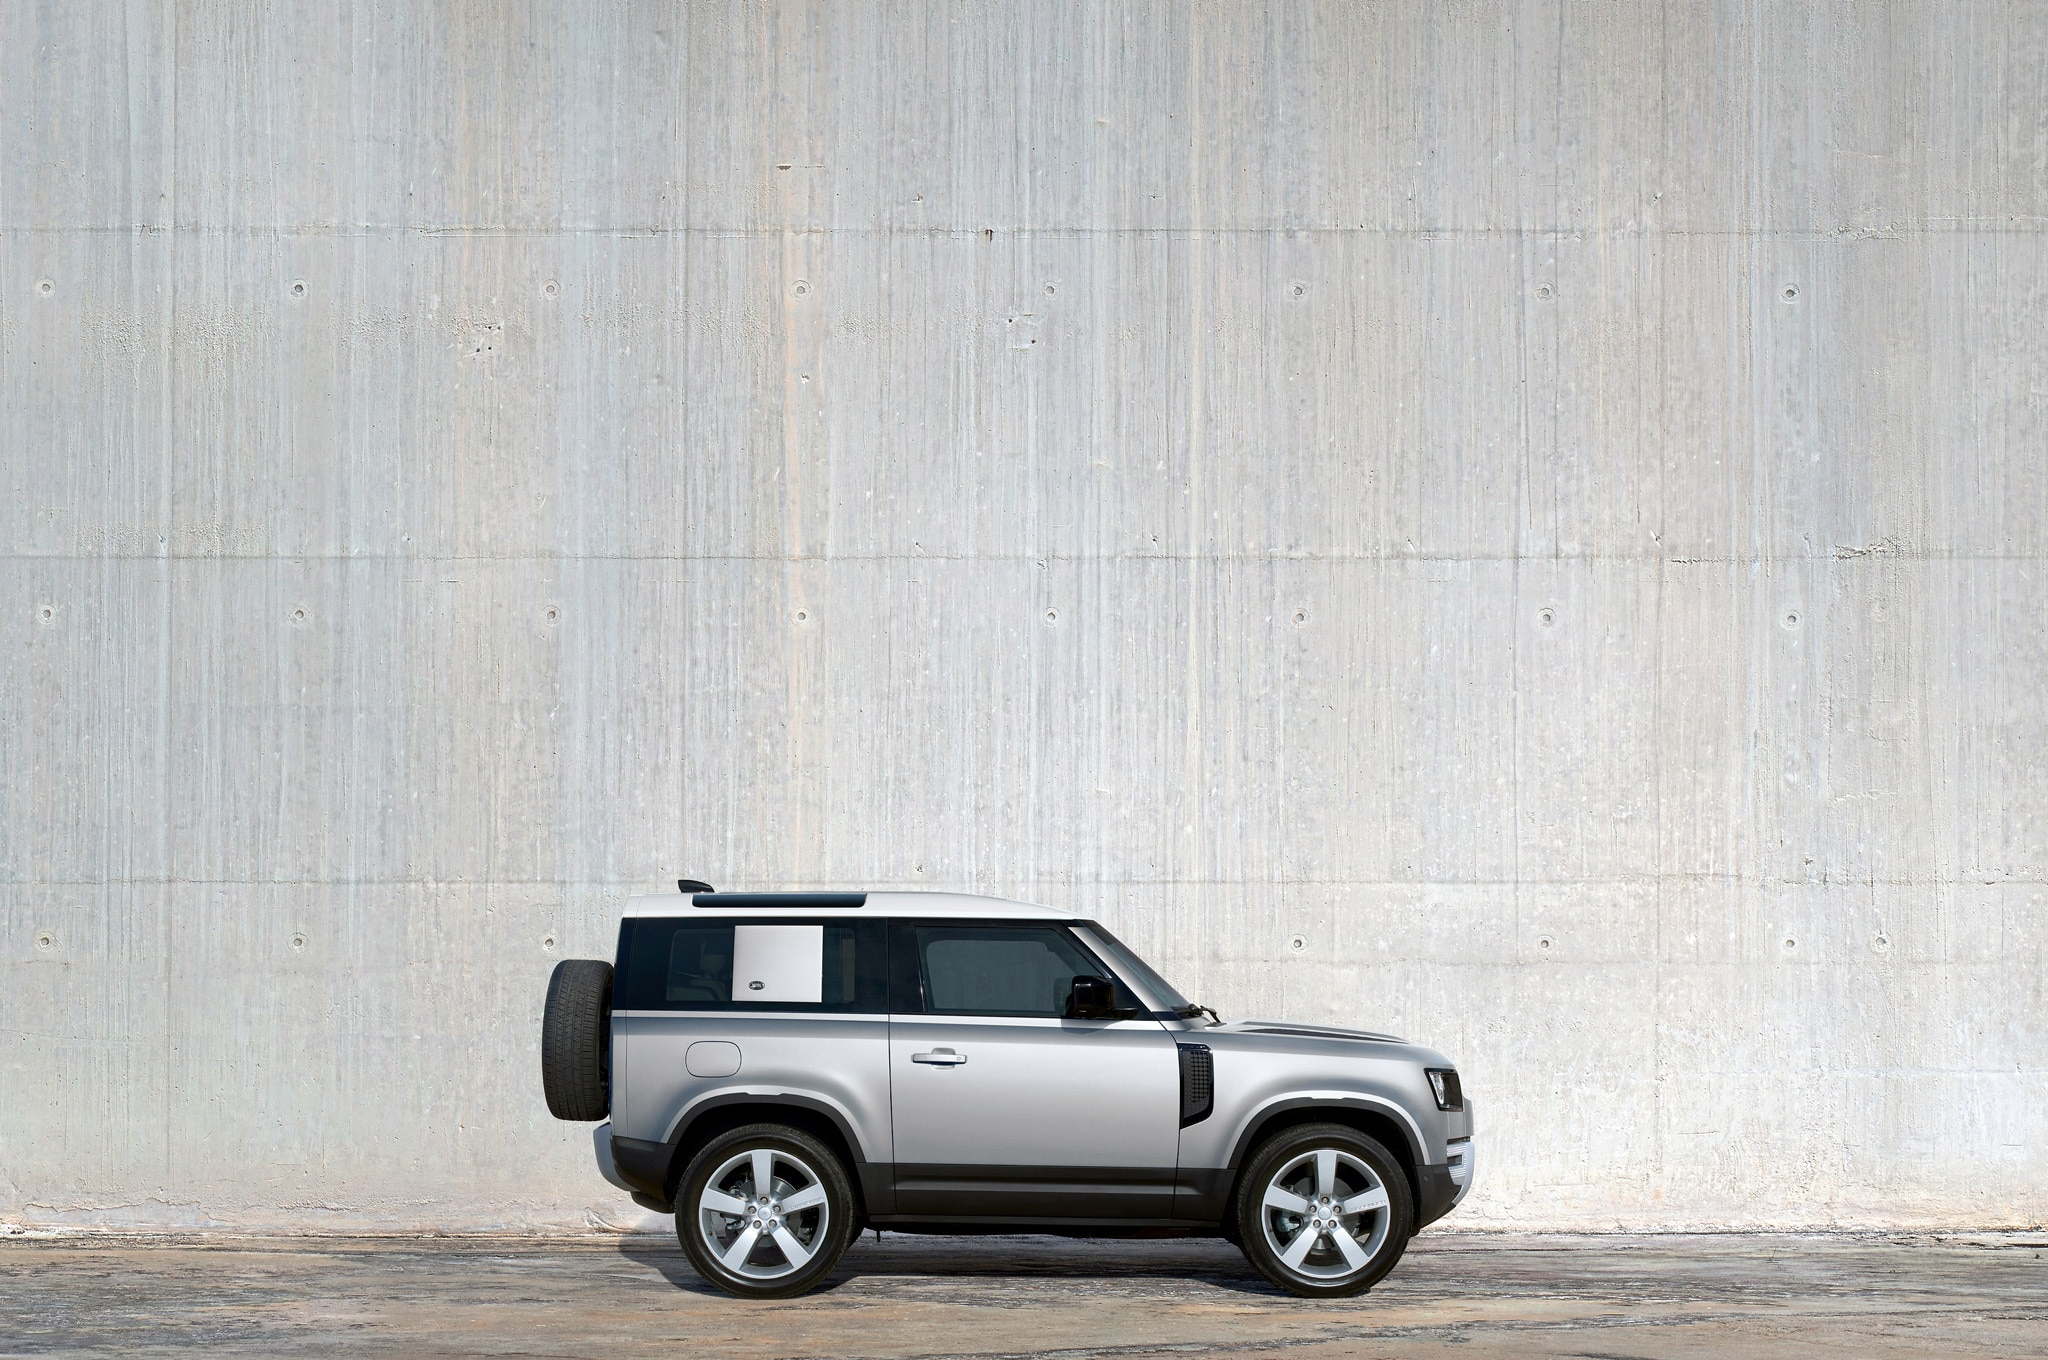 2020 land rover defender 90 exterior side profile 02